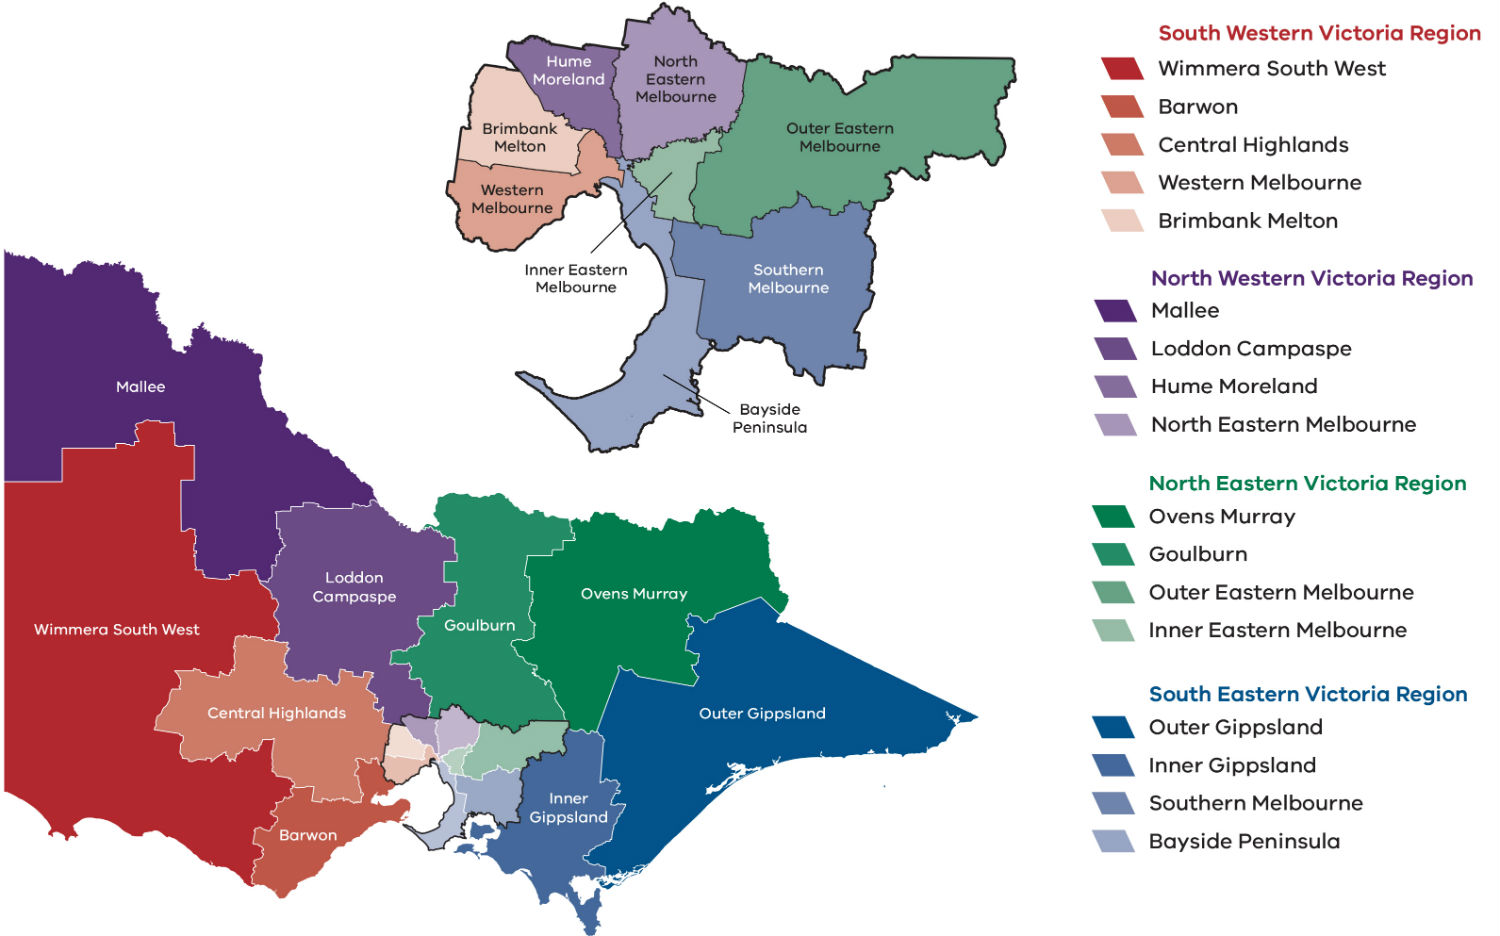 We divide up Victoria into 4 regions - North eastern, North western, South eastern and South western. The map shows how we divide up these regions. Each region has its own area team. North eastern includes innner eastern and outer eastern Melbourne, Goulburn and Ovens Murray. North western includes north eastern Melbourne, Hume Moreland, Loddon Campaspe and Malle. South eastern includes southern Melbourne, Bayside Peninsula, inner Gippsland and outer Gippsland. South western includes western Melbourne, Brimbank Melton, Central Highlands, Barwon and Wimmera south west area.